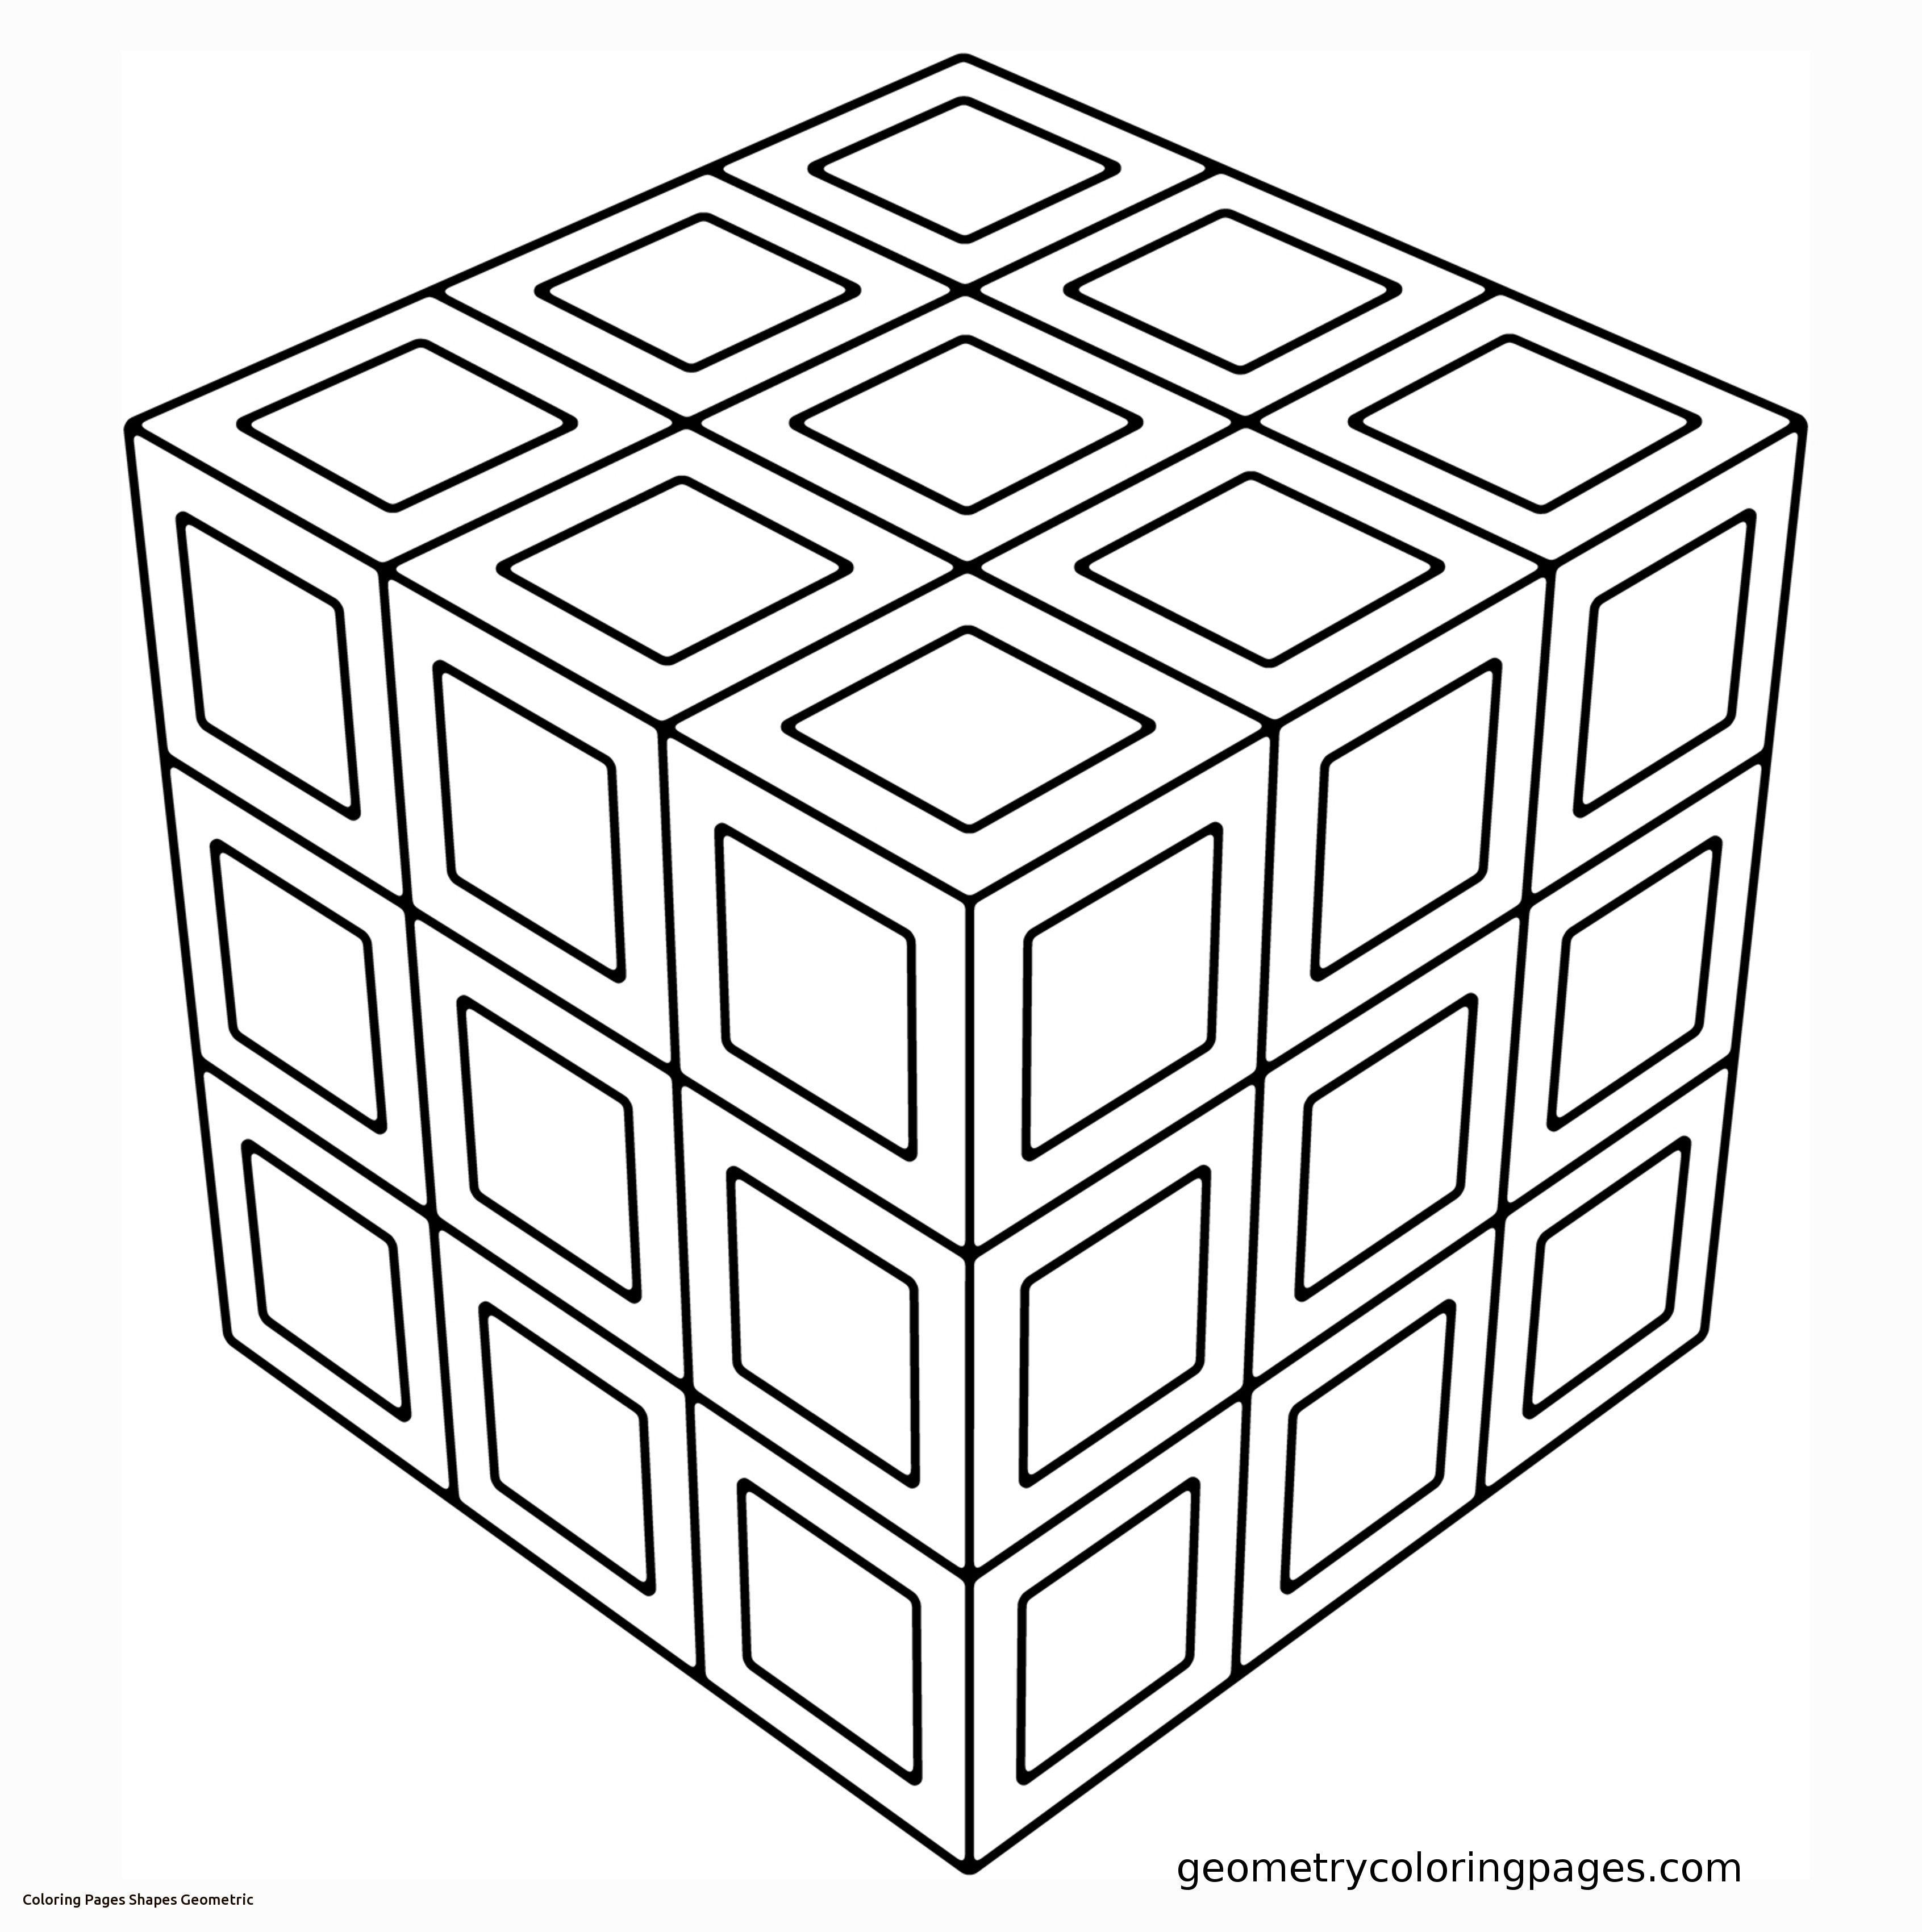 3383x3400 Geometric Printable Colorings Coloring Page For Adults Easy